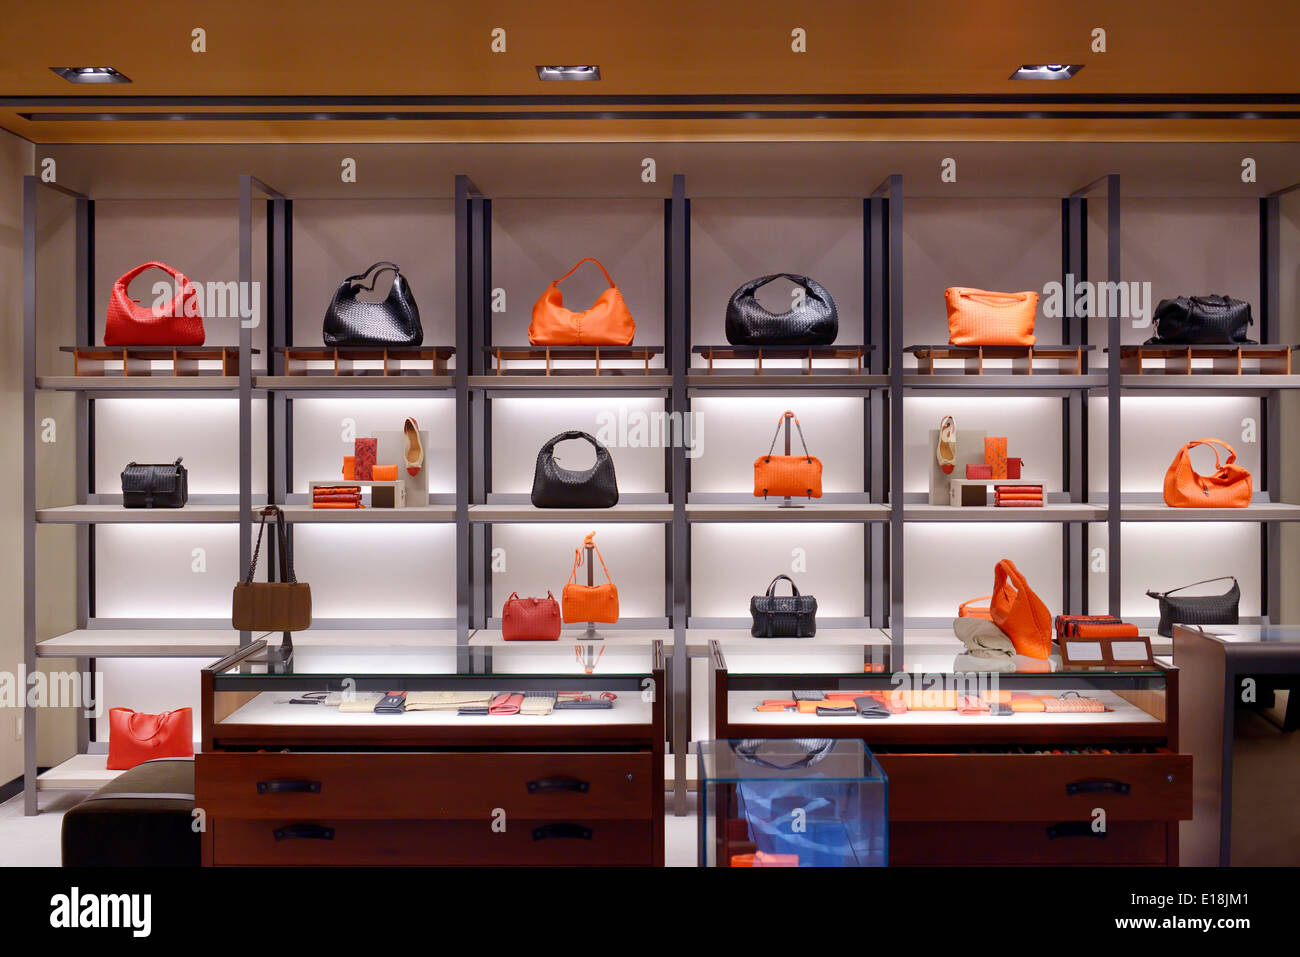 Womens purses on display in a store - Stock Image